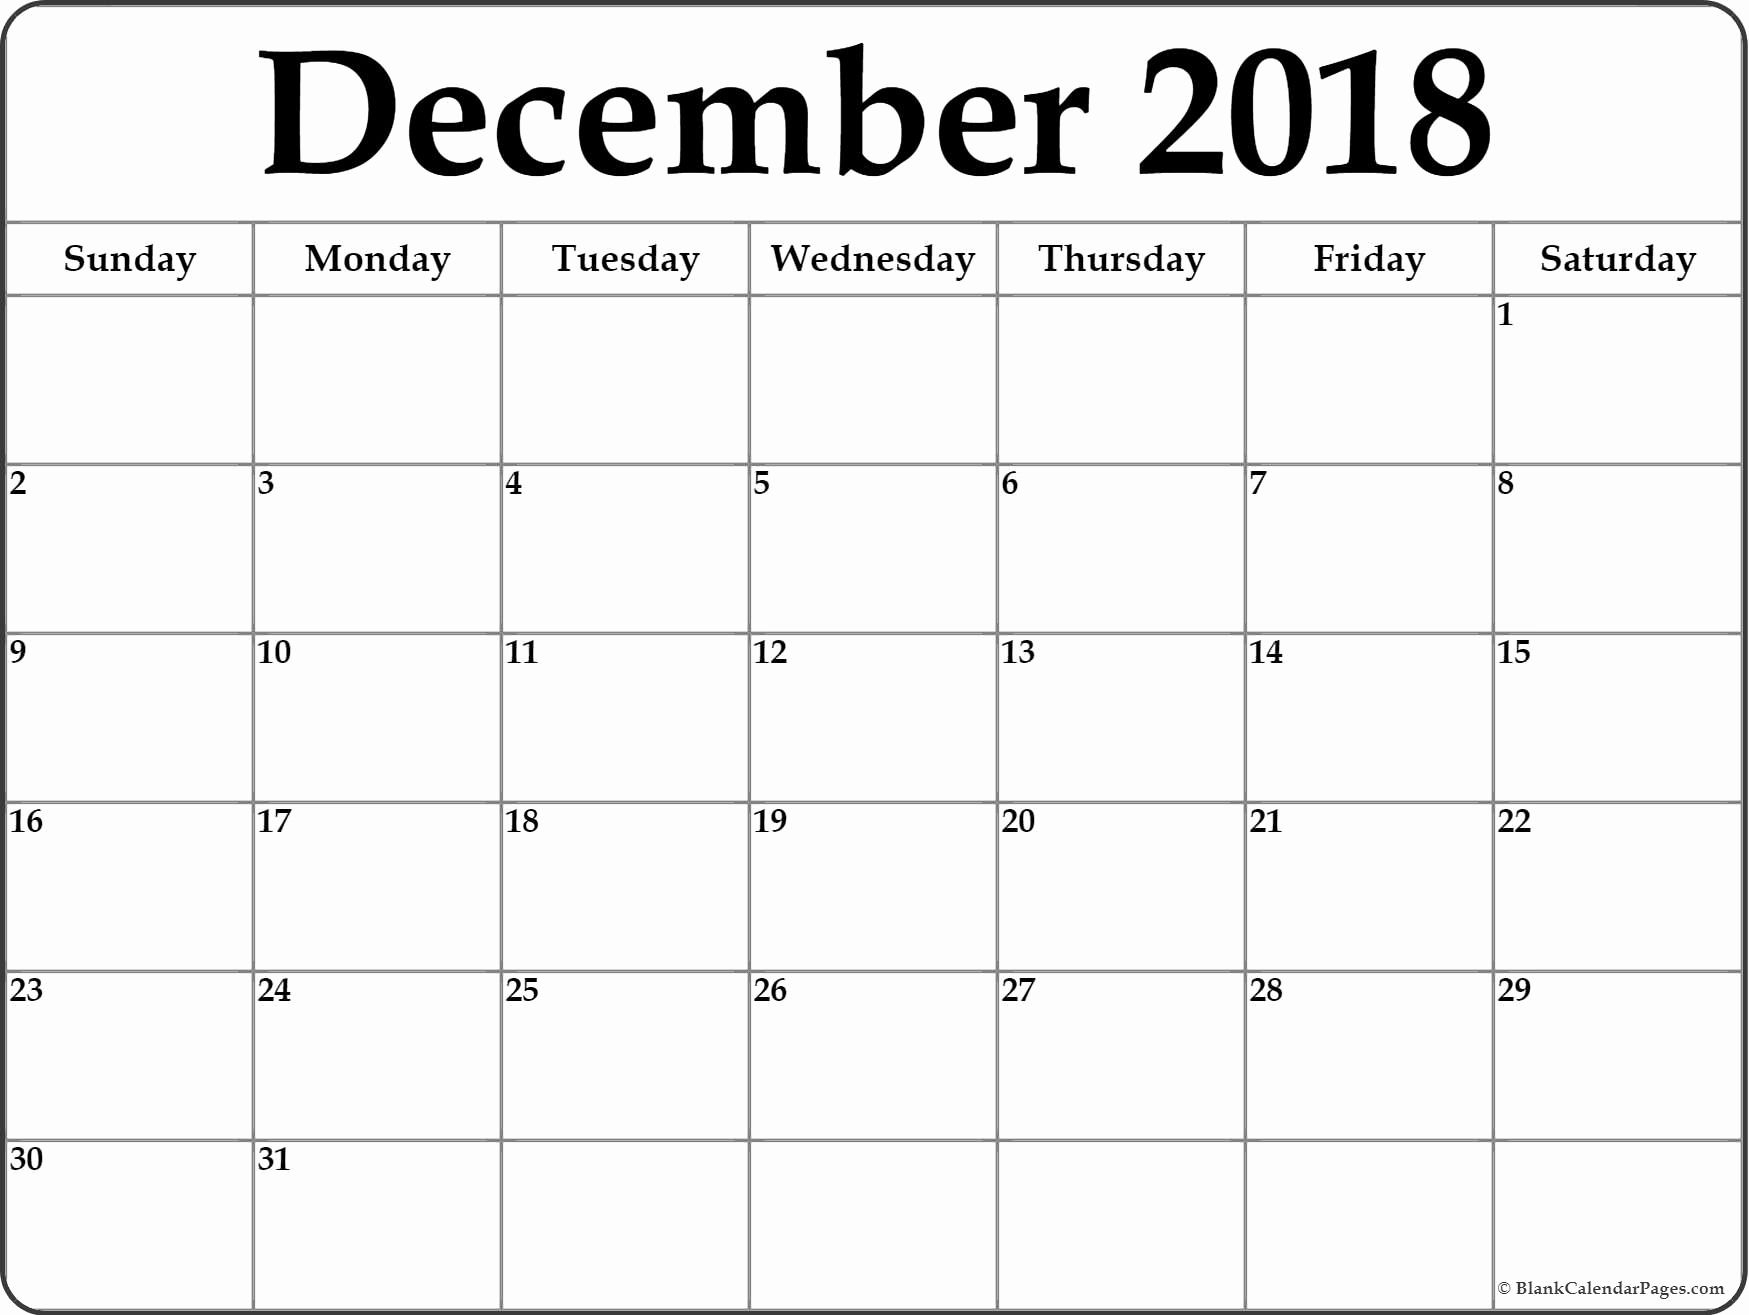 Calendar December 2018 And January 2019 | December 2018 Calendar in Blank Monthly Calendar Dec